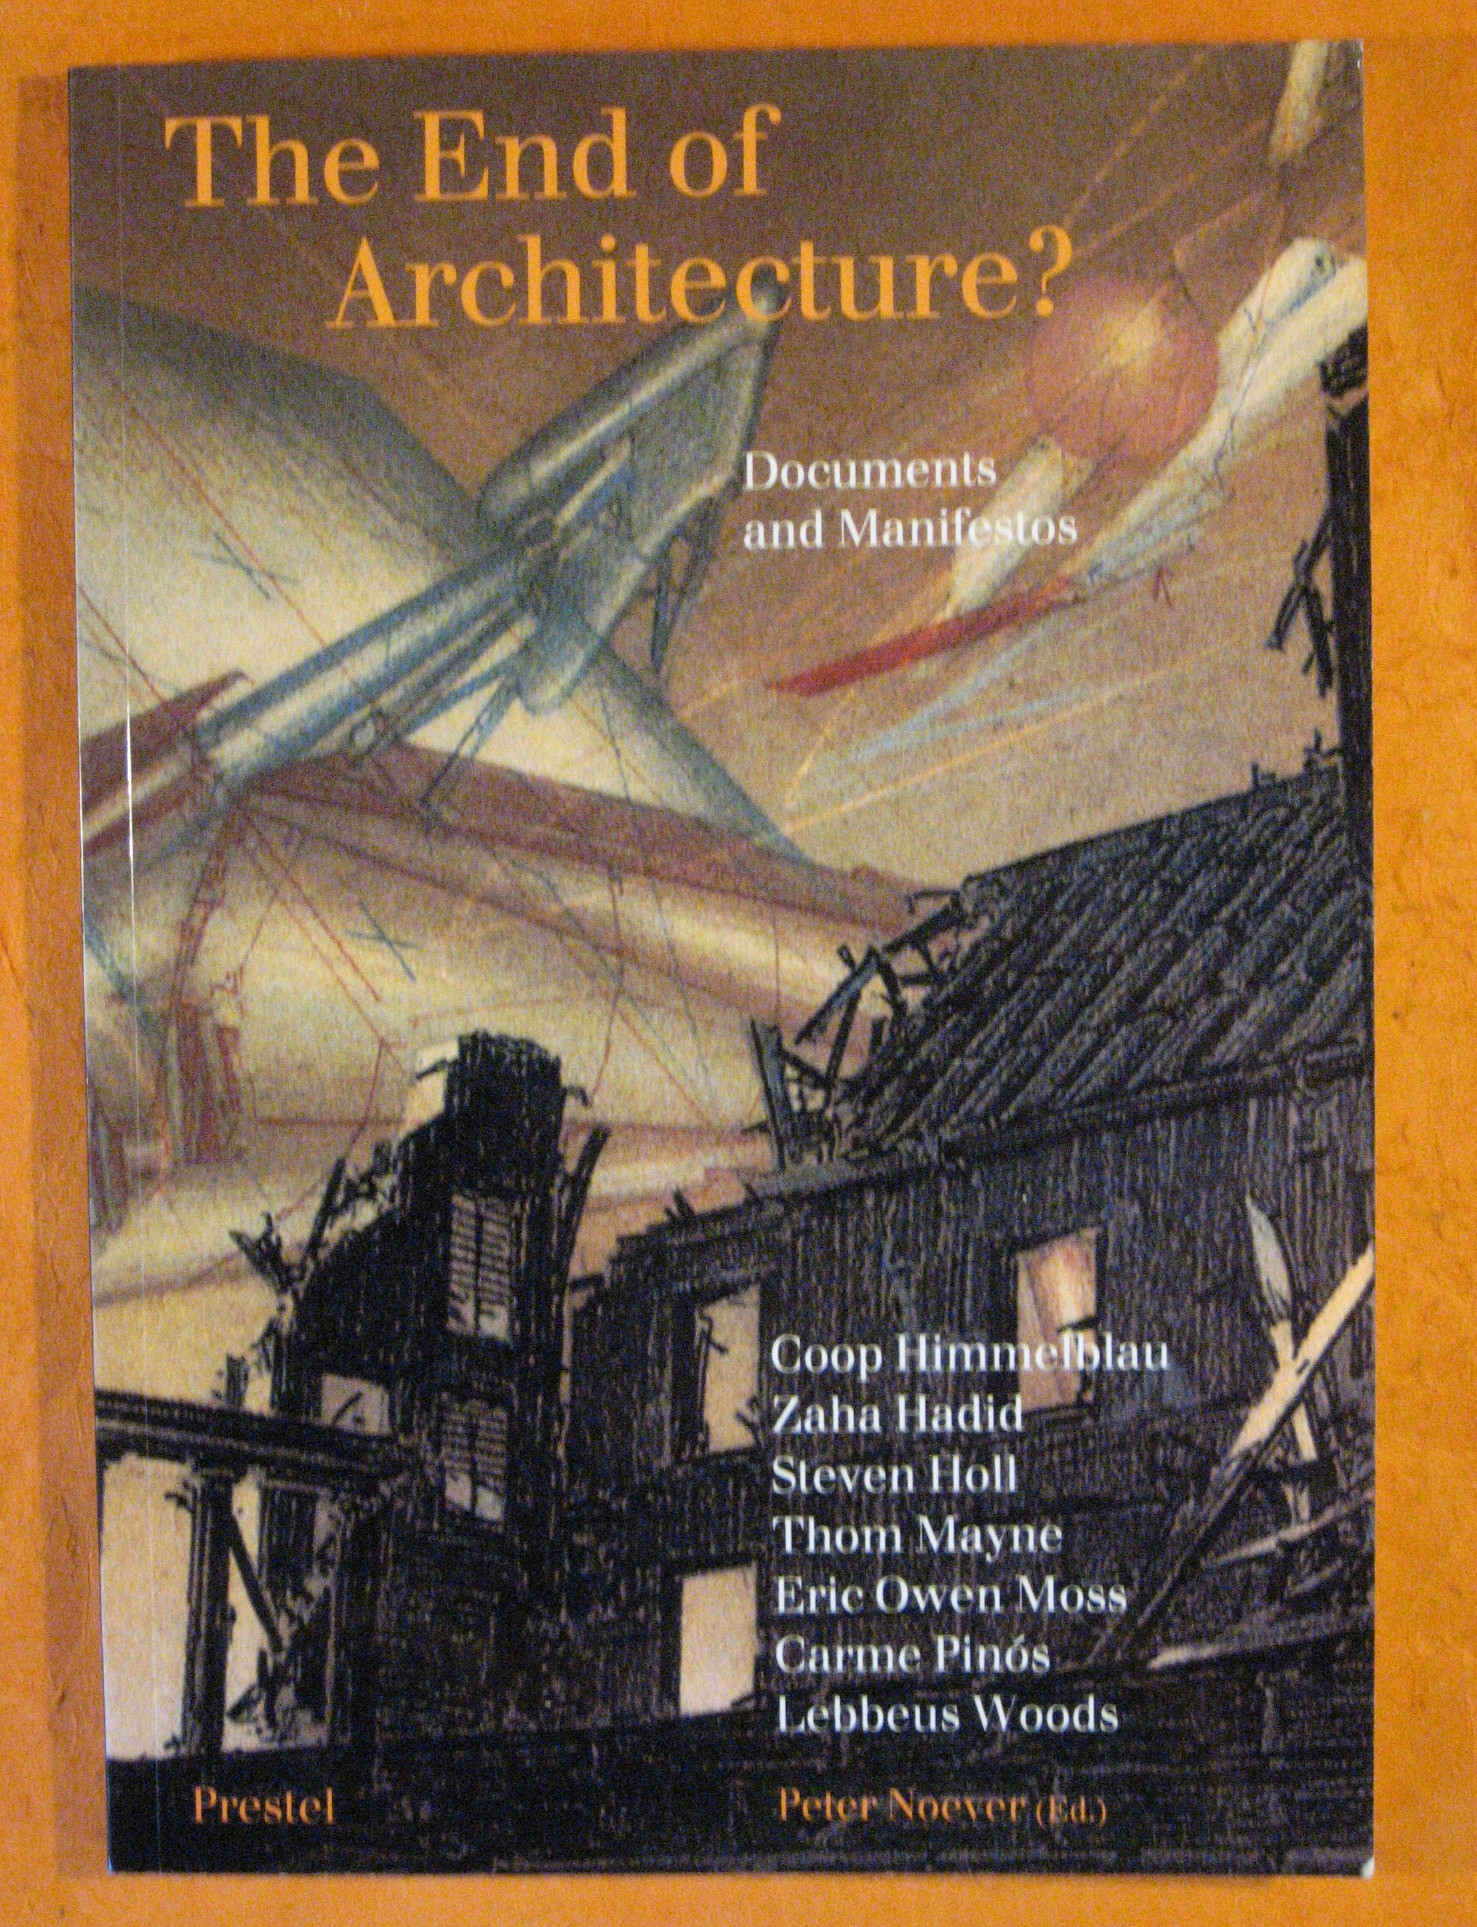 The End of Architecture?: Documents and Manifestos, Vienna Architecture Conference, Noever, Peter (Ed.)